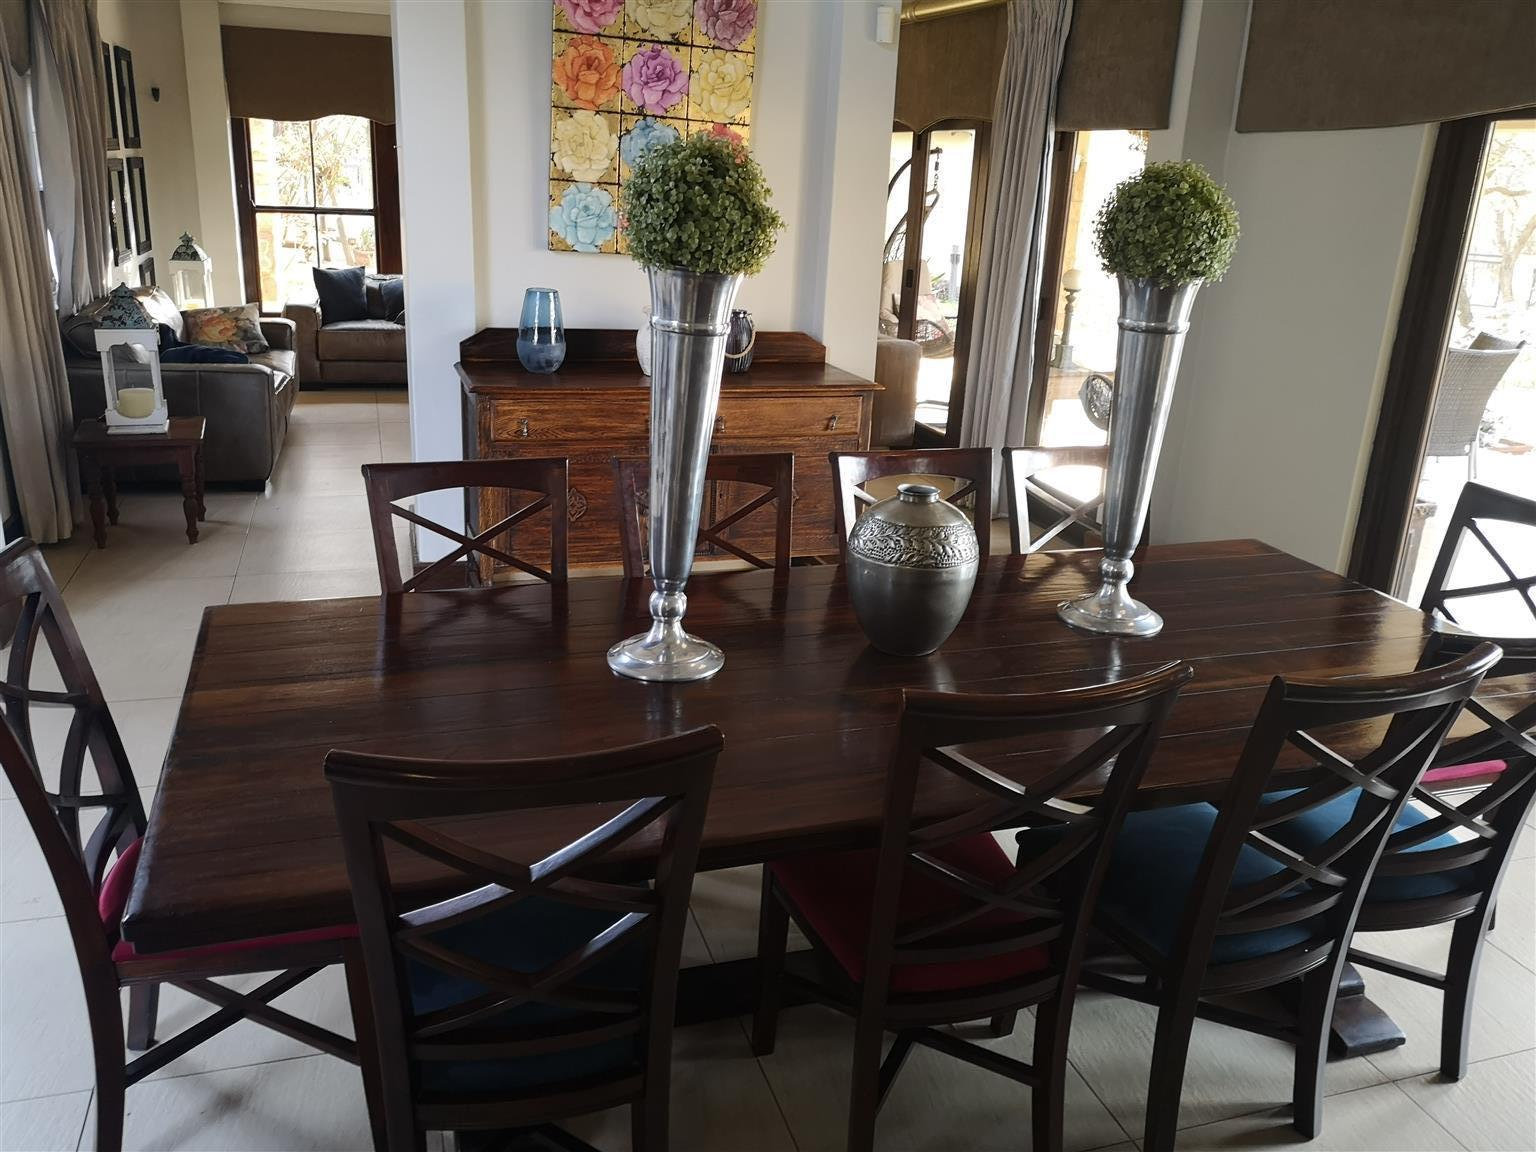 10 Seater Saligna Wood Dining Table Chairs And Side Board Junk Mail